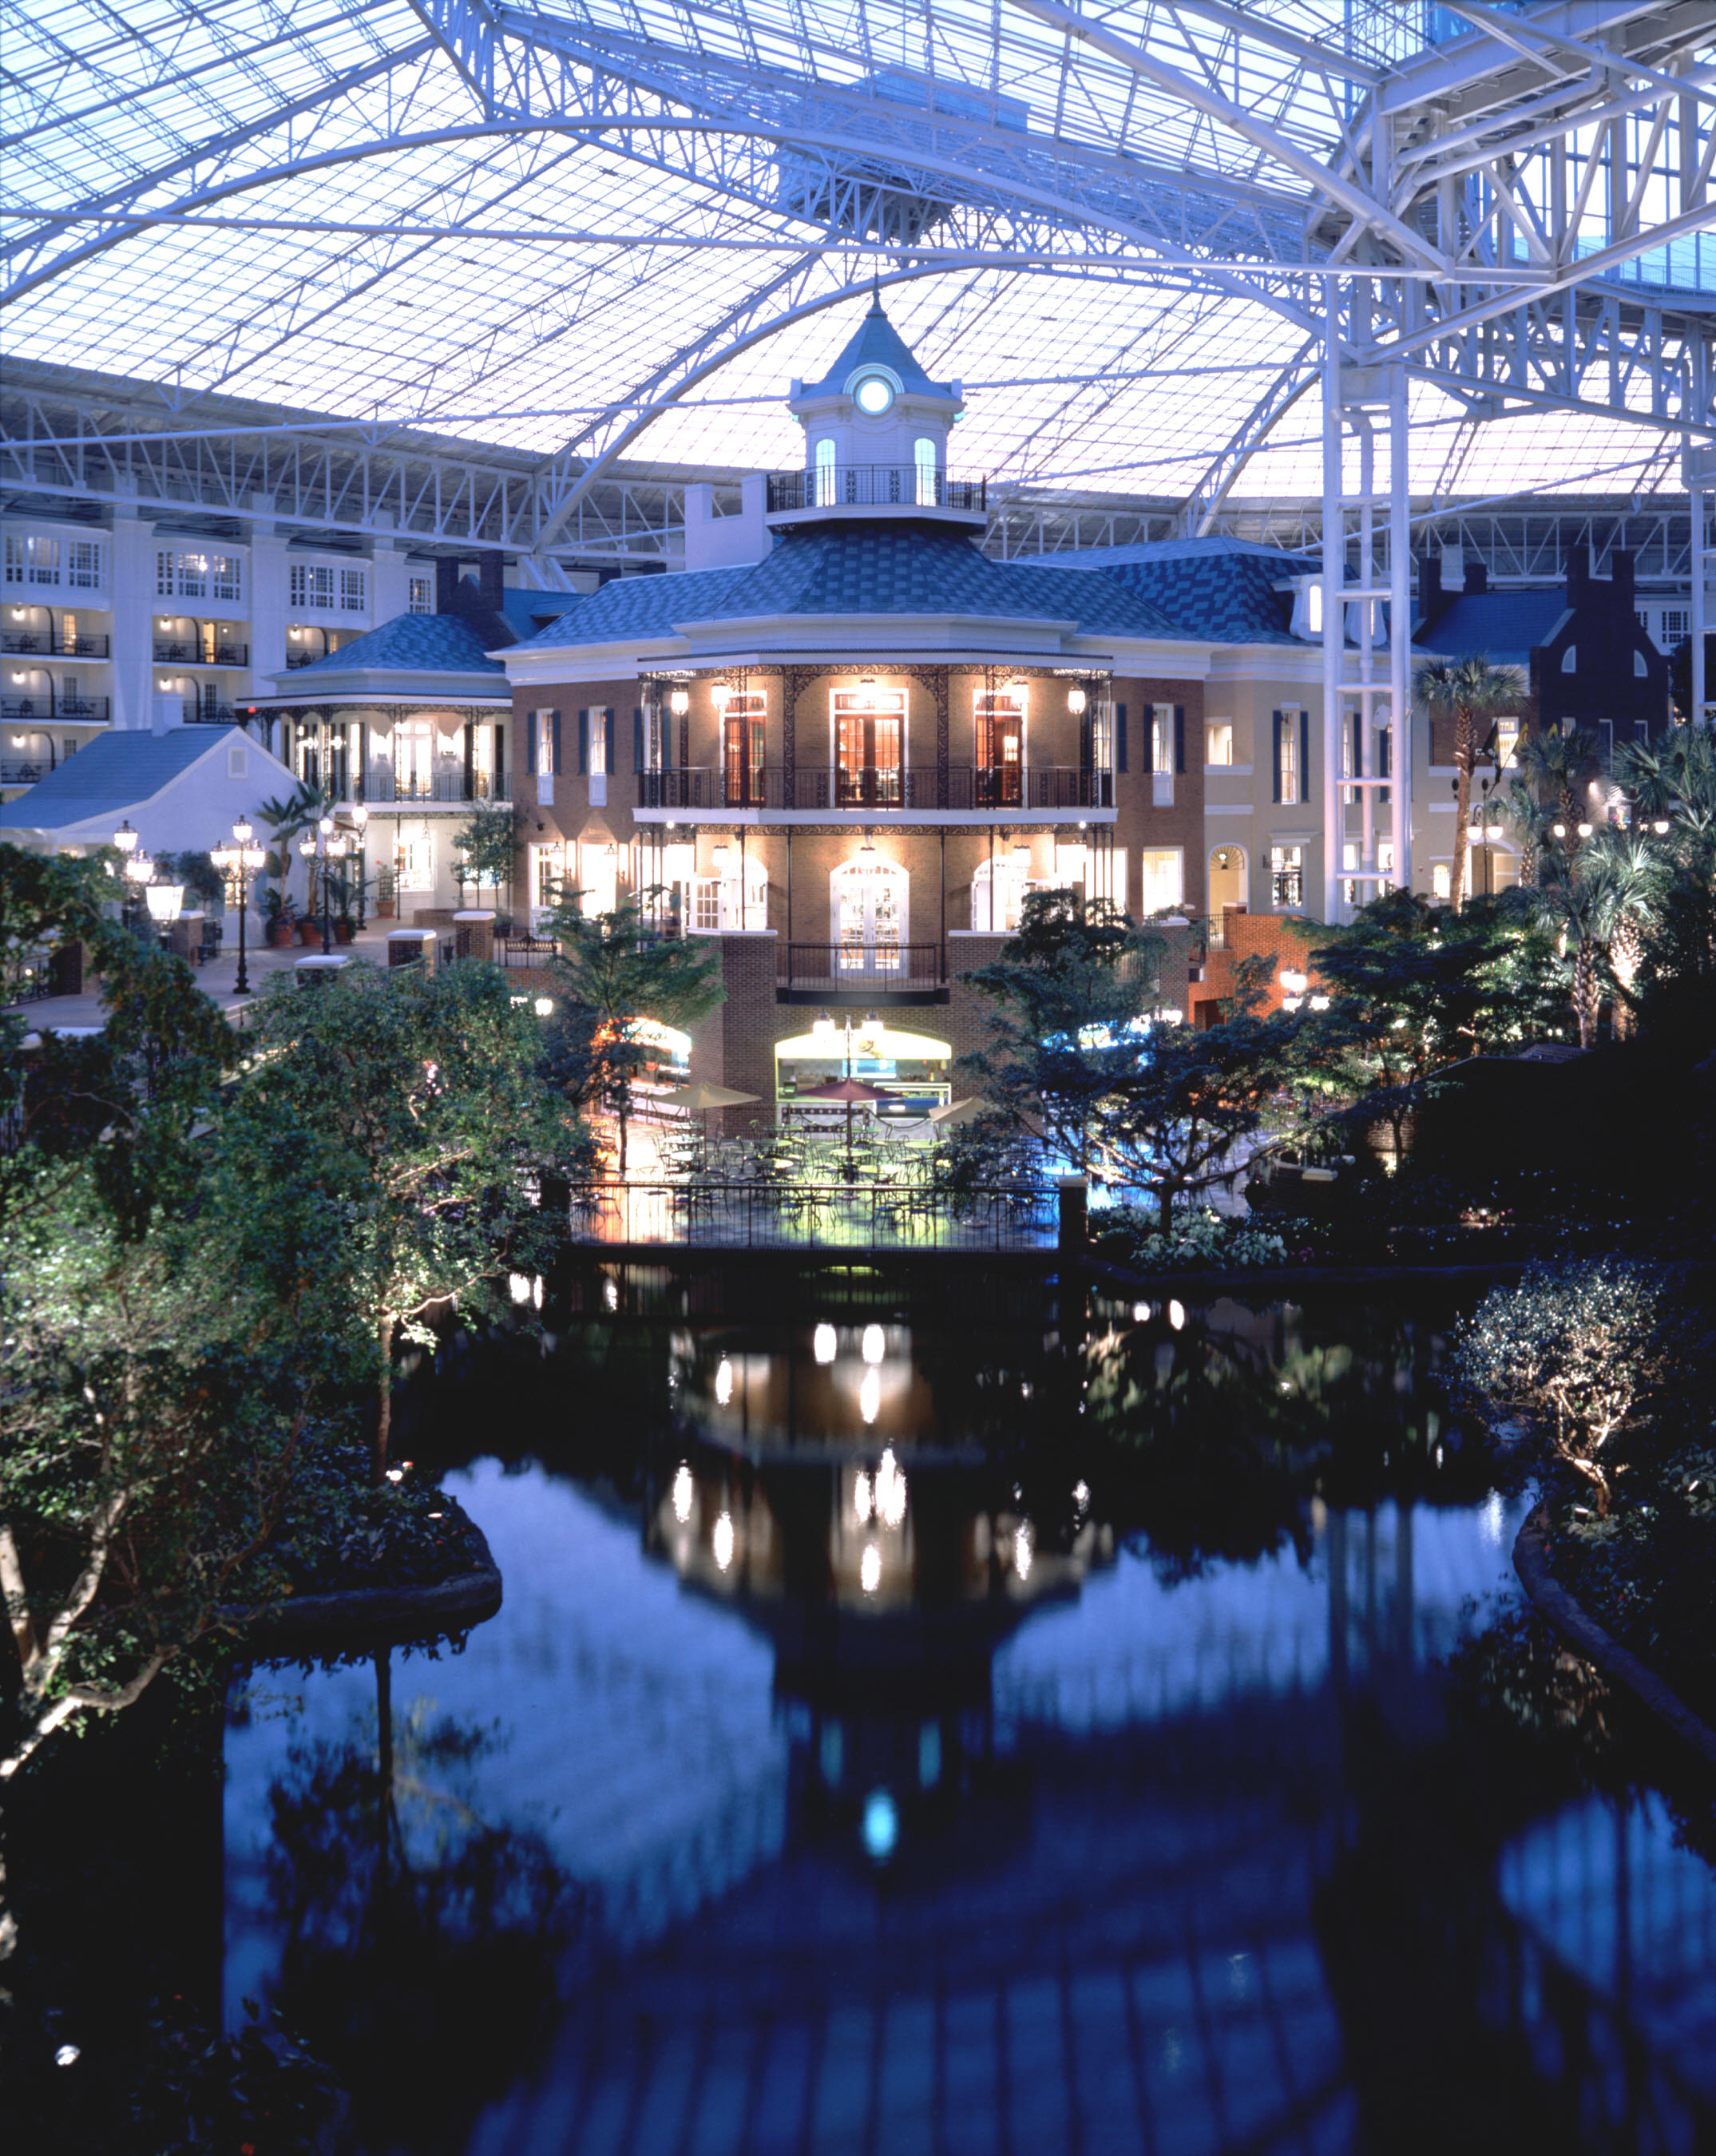 This Year S National Conference Took Place At The Prestigious Opryland Hotel In Nashville Tennessee For Second Time 3 Years